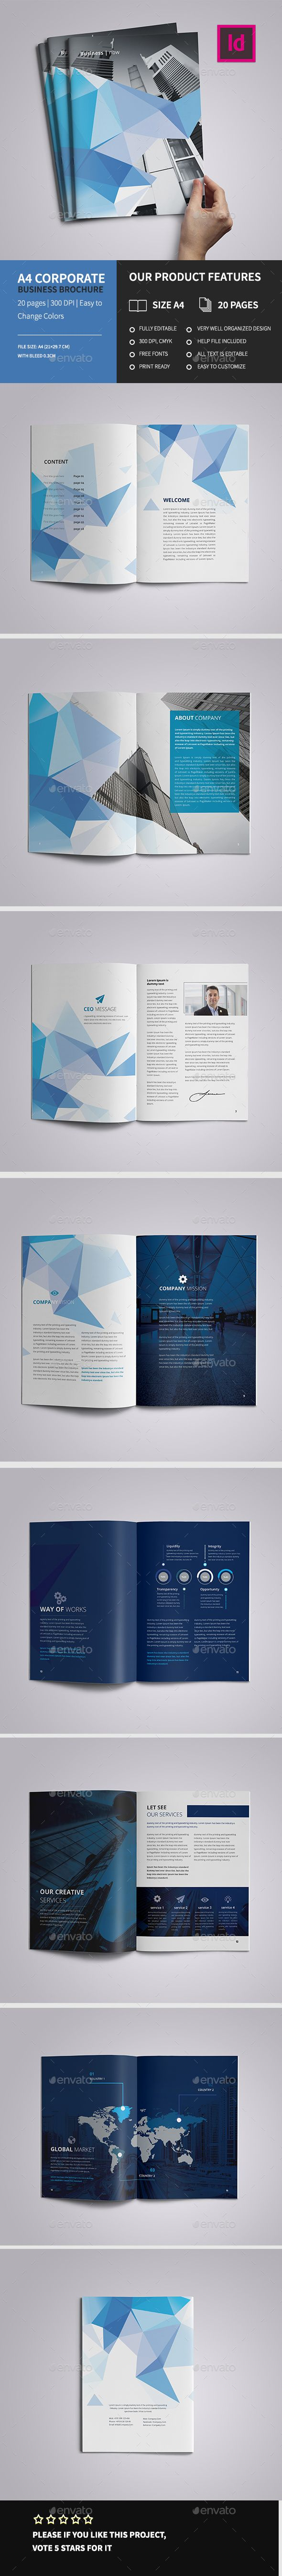 A4 Corporate Business Brochure Template InDesign INDD. Download here: http://graphicriver.net/item/a4-corporate-business-brochure/15422652?ref=ksioks